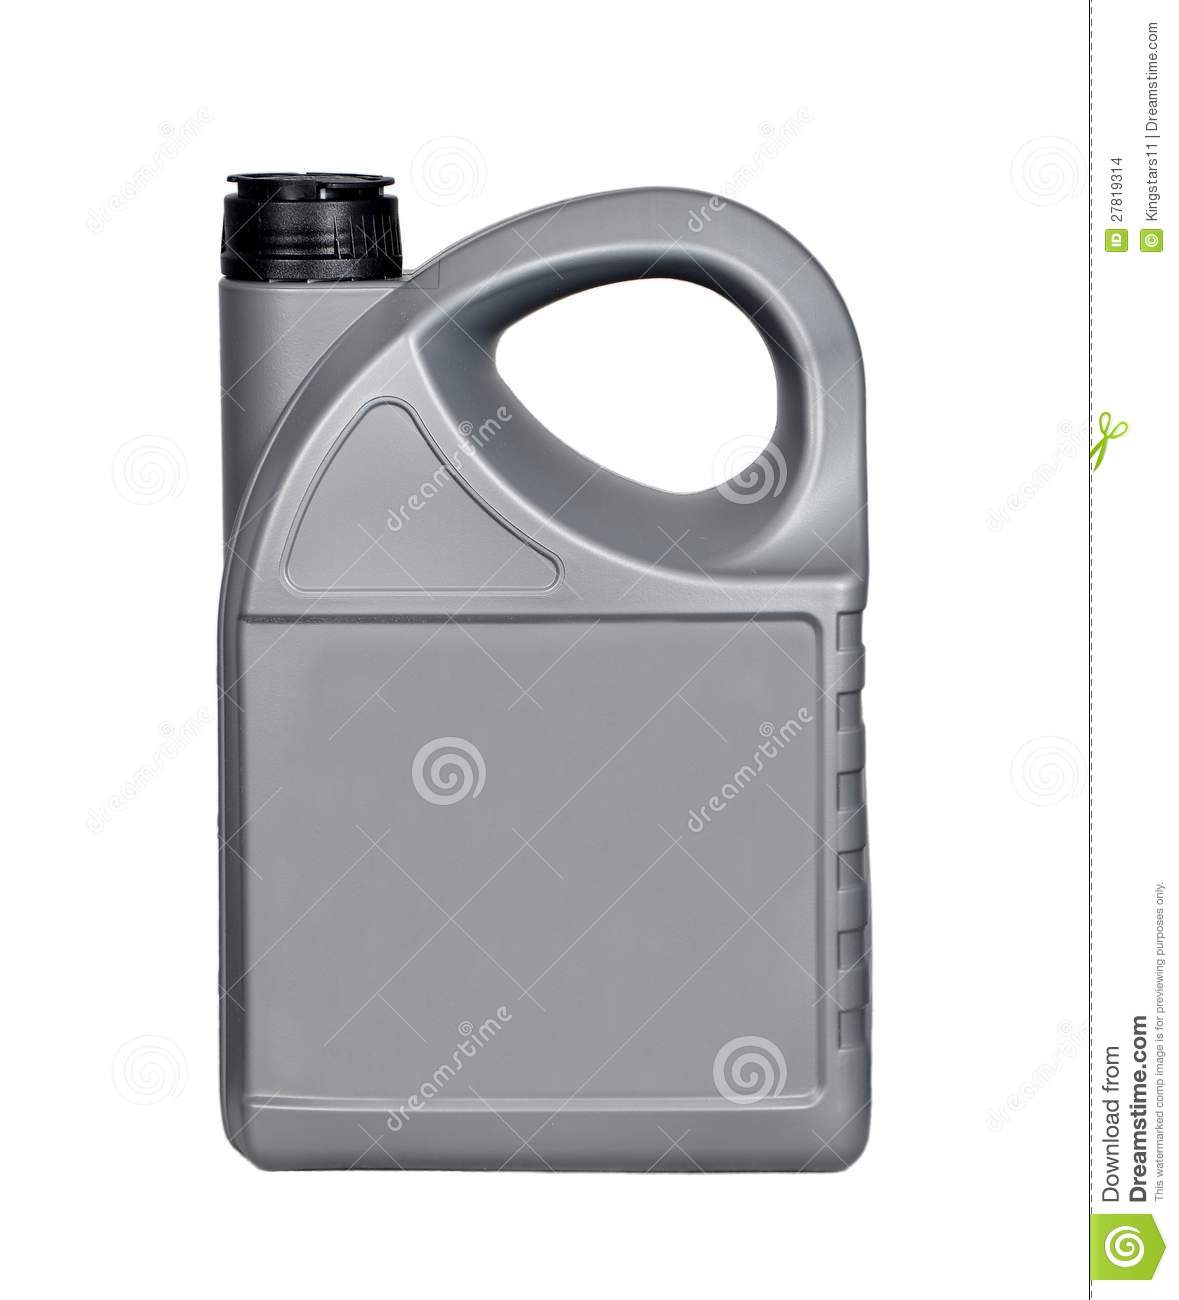 4 Liter Lubricants Bottle Stock Images.